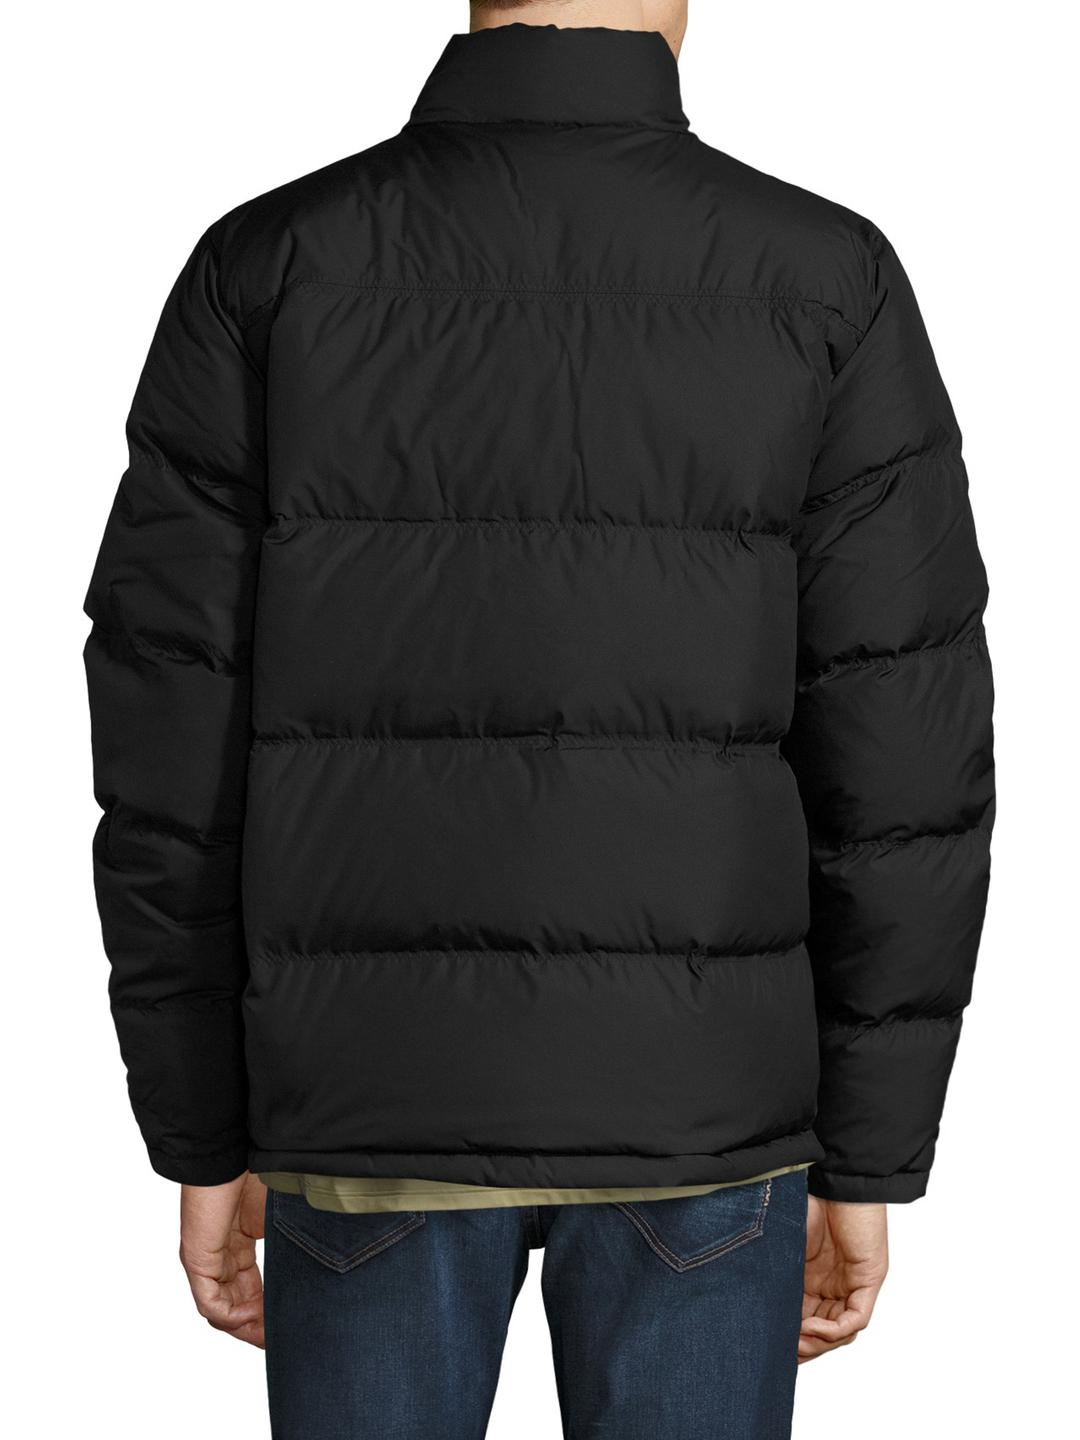 Timberland black quilted jacket